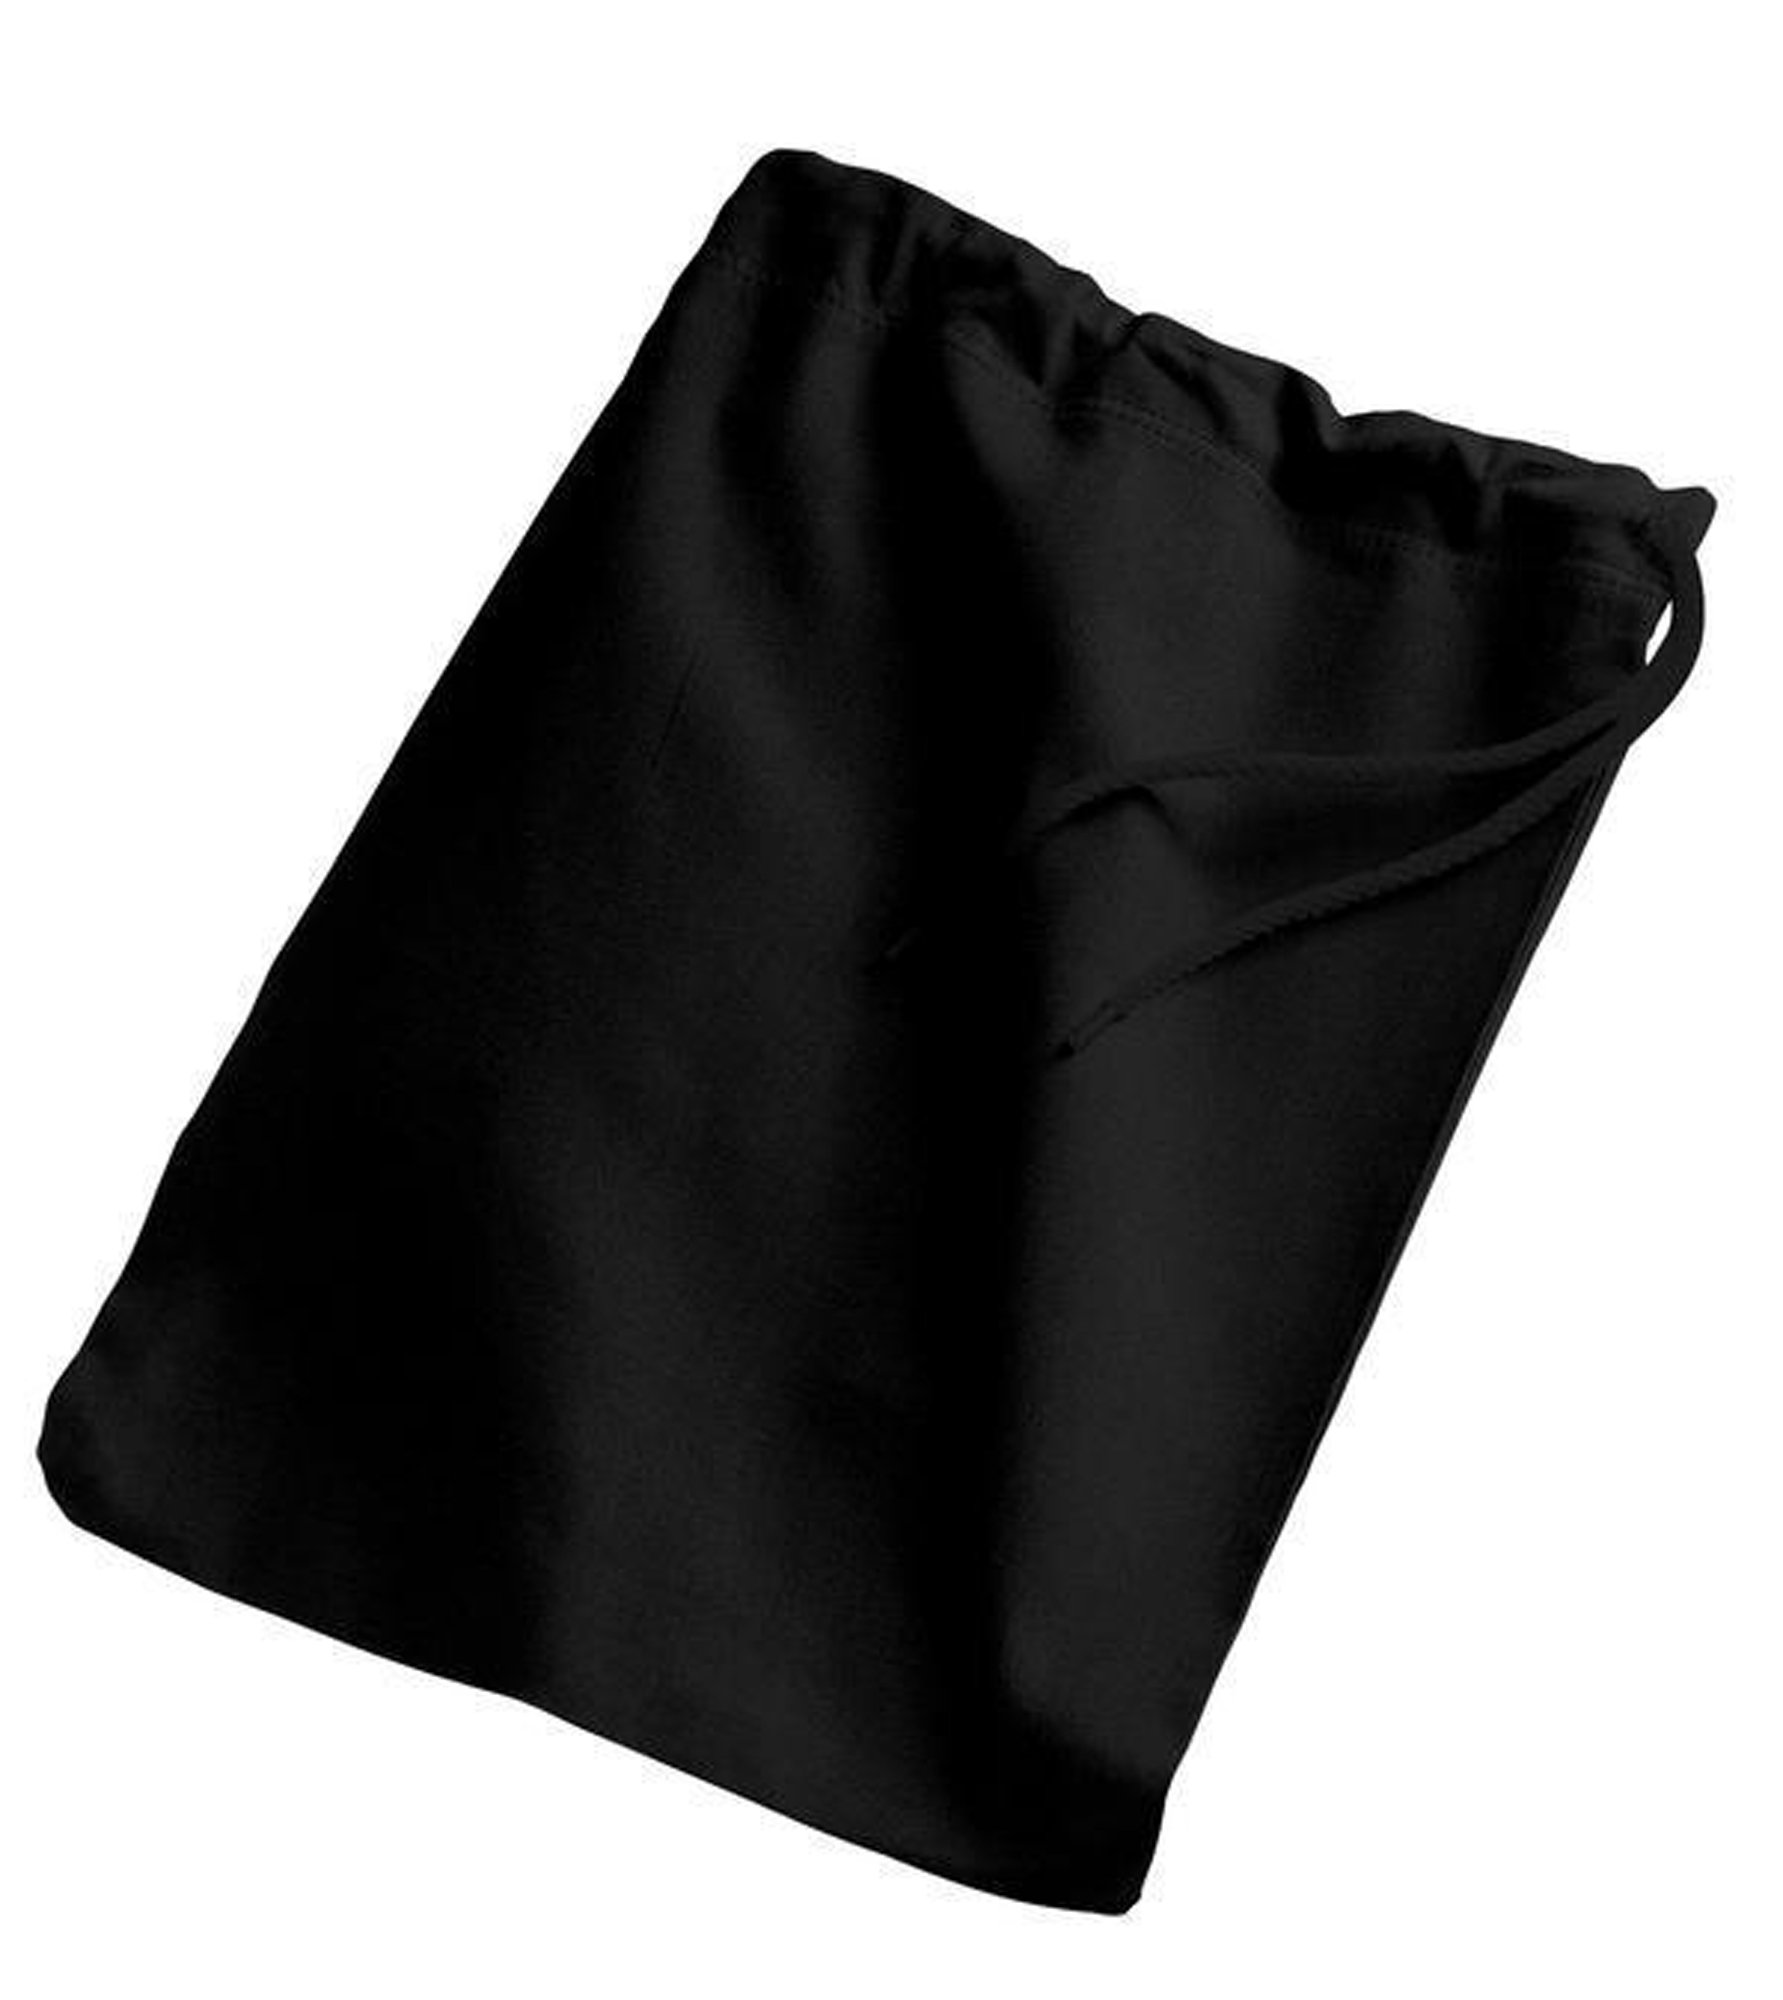 Pack of 12-100% Cotton Drawstring Shoe Bags in Bulk with Matching Color Drawstring Closure - 15.75''H x 11''W - SBG10 - Art and Craft Customizable Wholesale Drawstring Bags in Bulk (Black) by BagzDepot